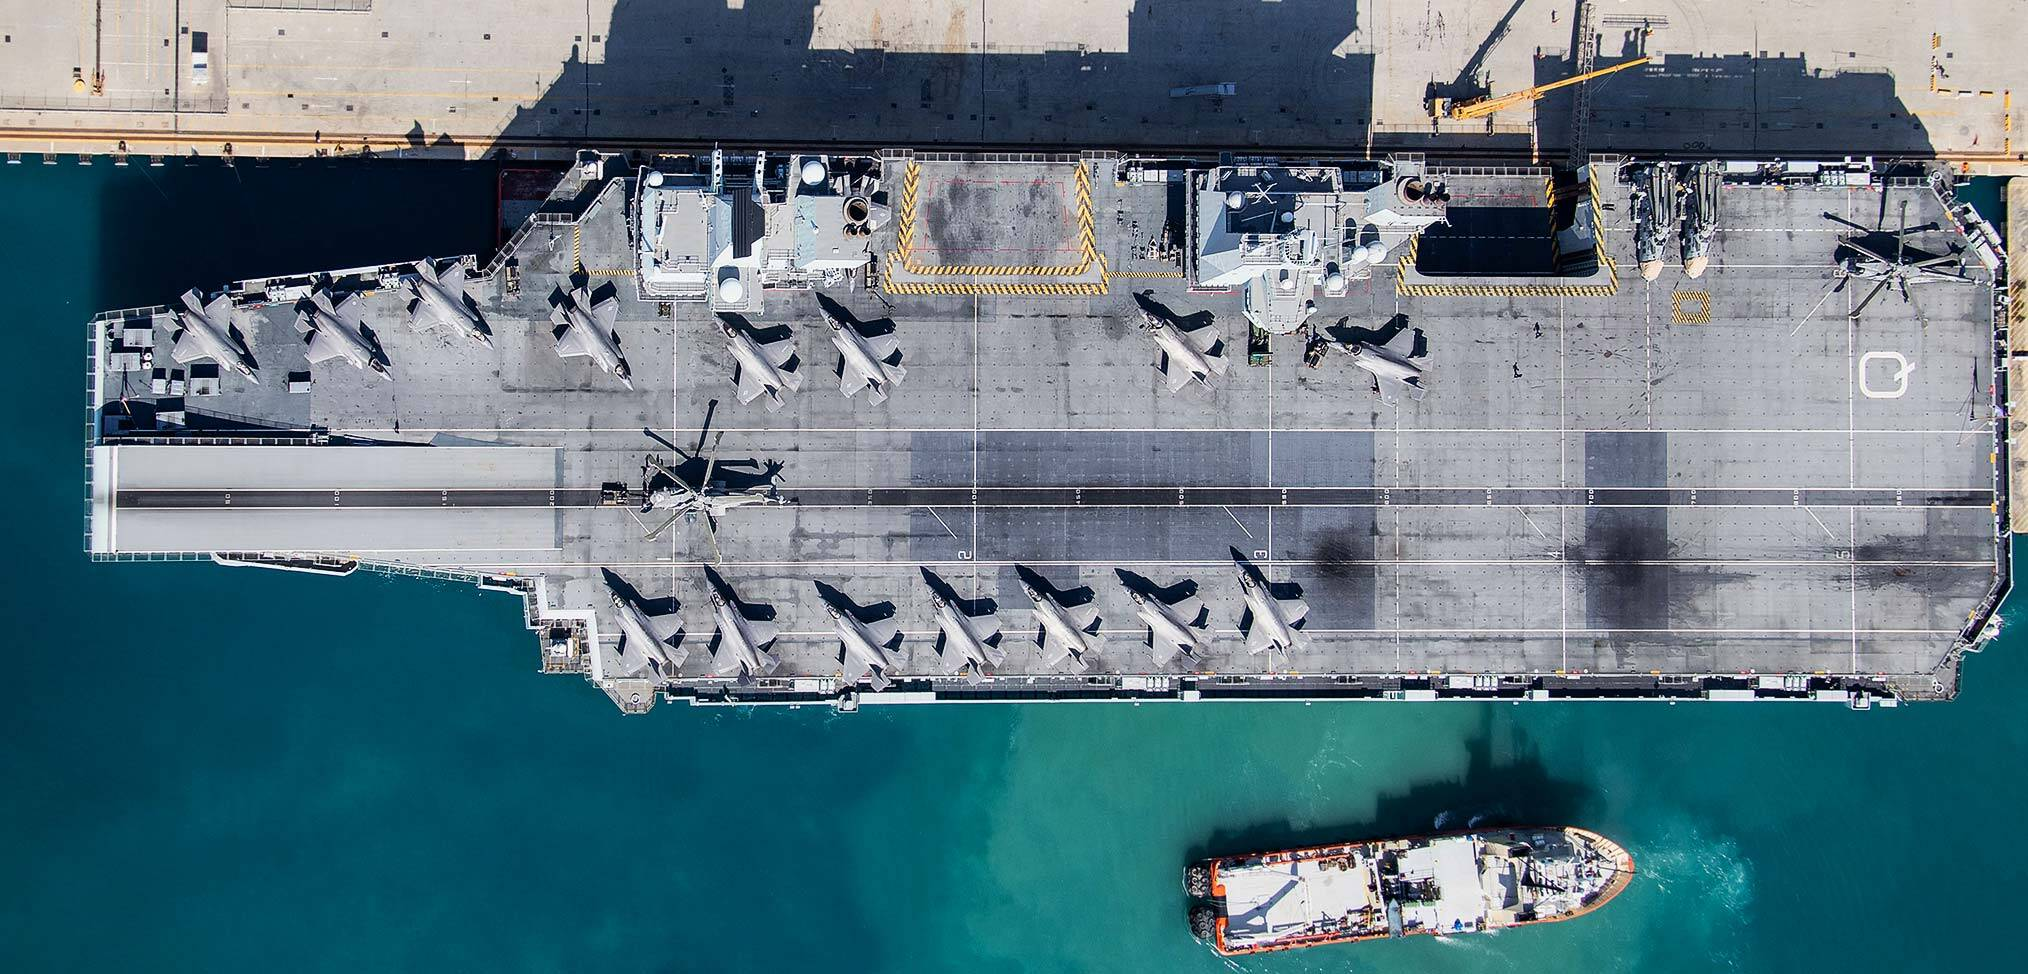 Mediterranean interlude – the Carrier Strike Group on its defence diplomacy mission